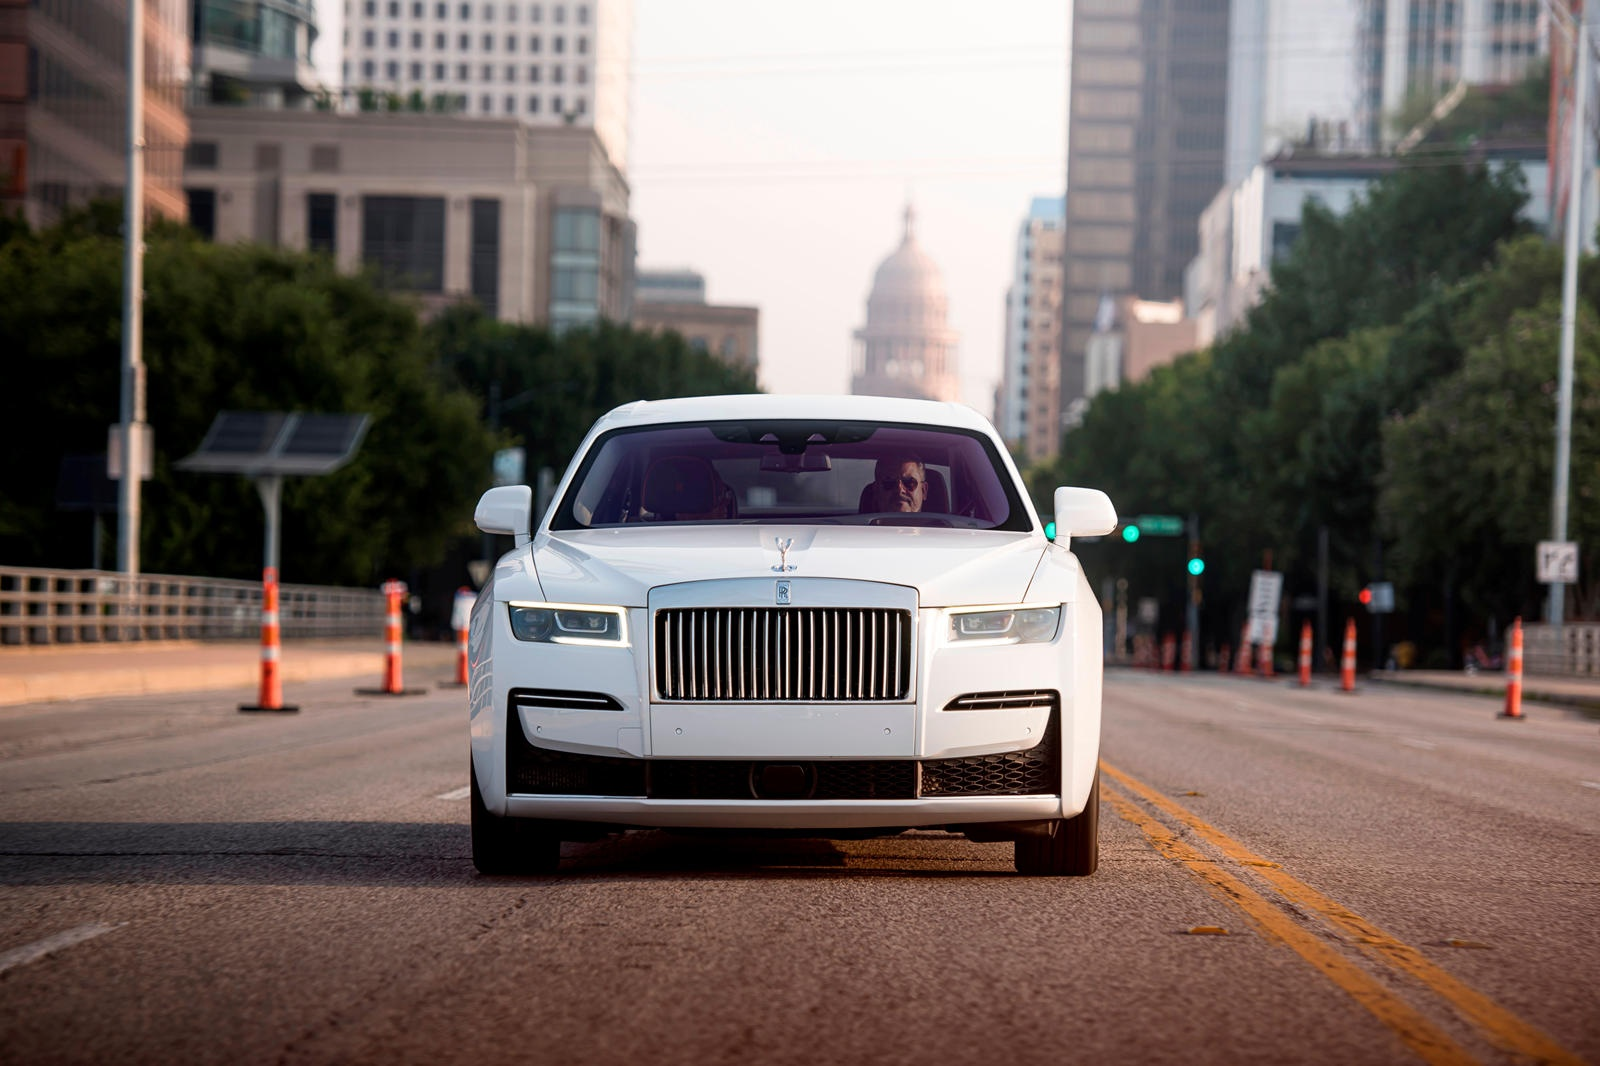 Danh gia Rolls-Royce Ghost 2021 anh 2